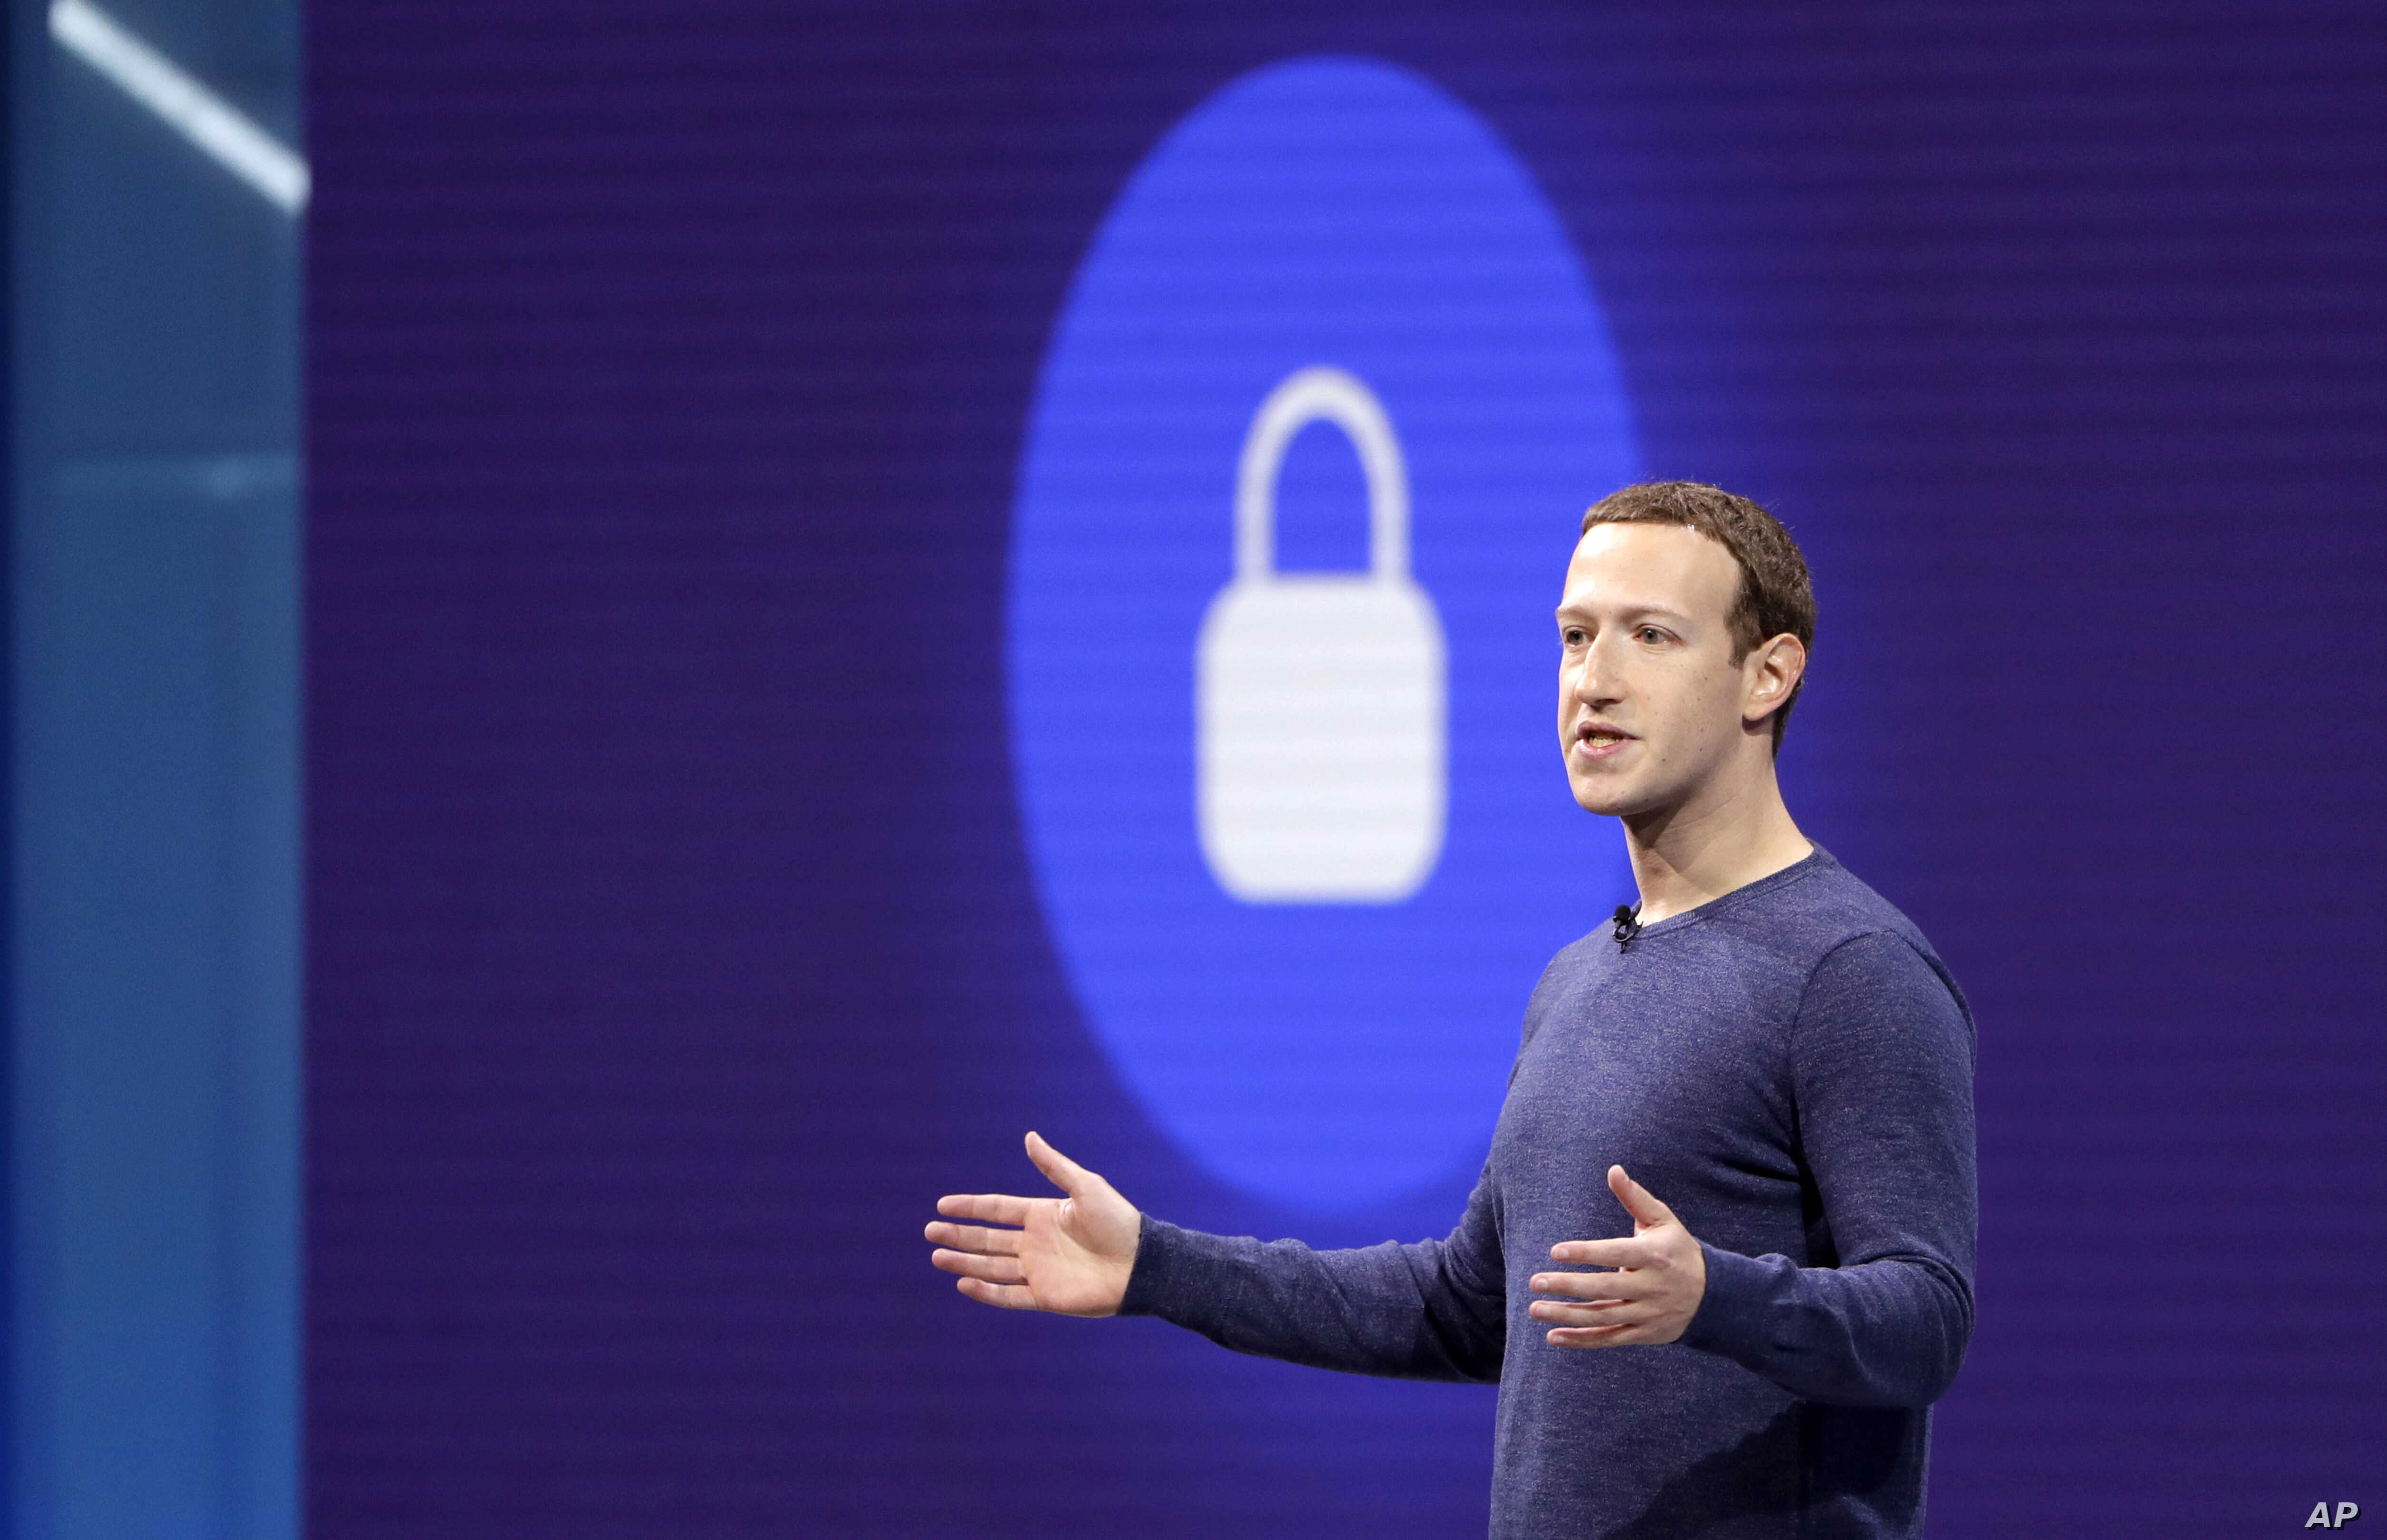 Facebook 'Unintentionally' Uploaded Email Contacts of 1 5 Million